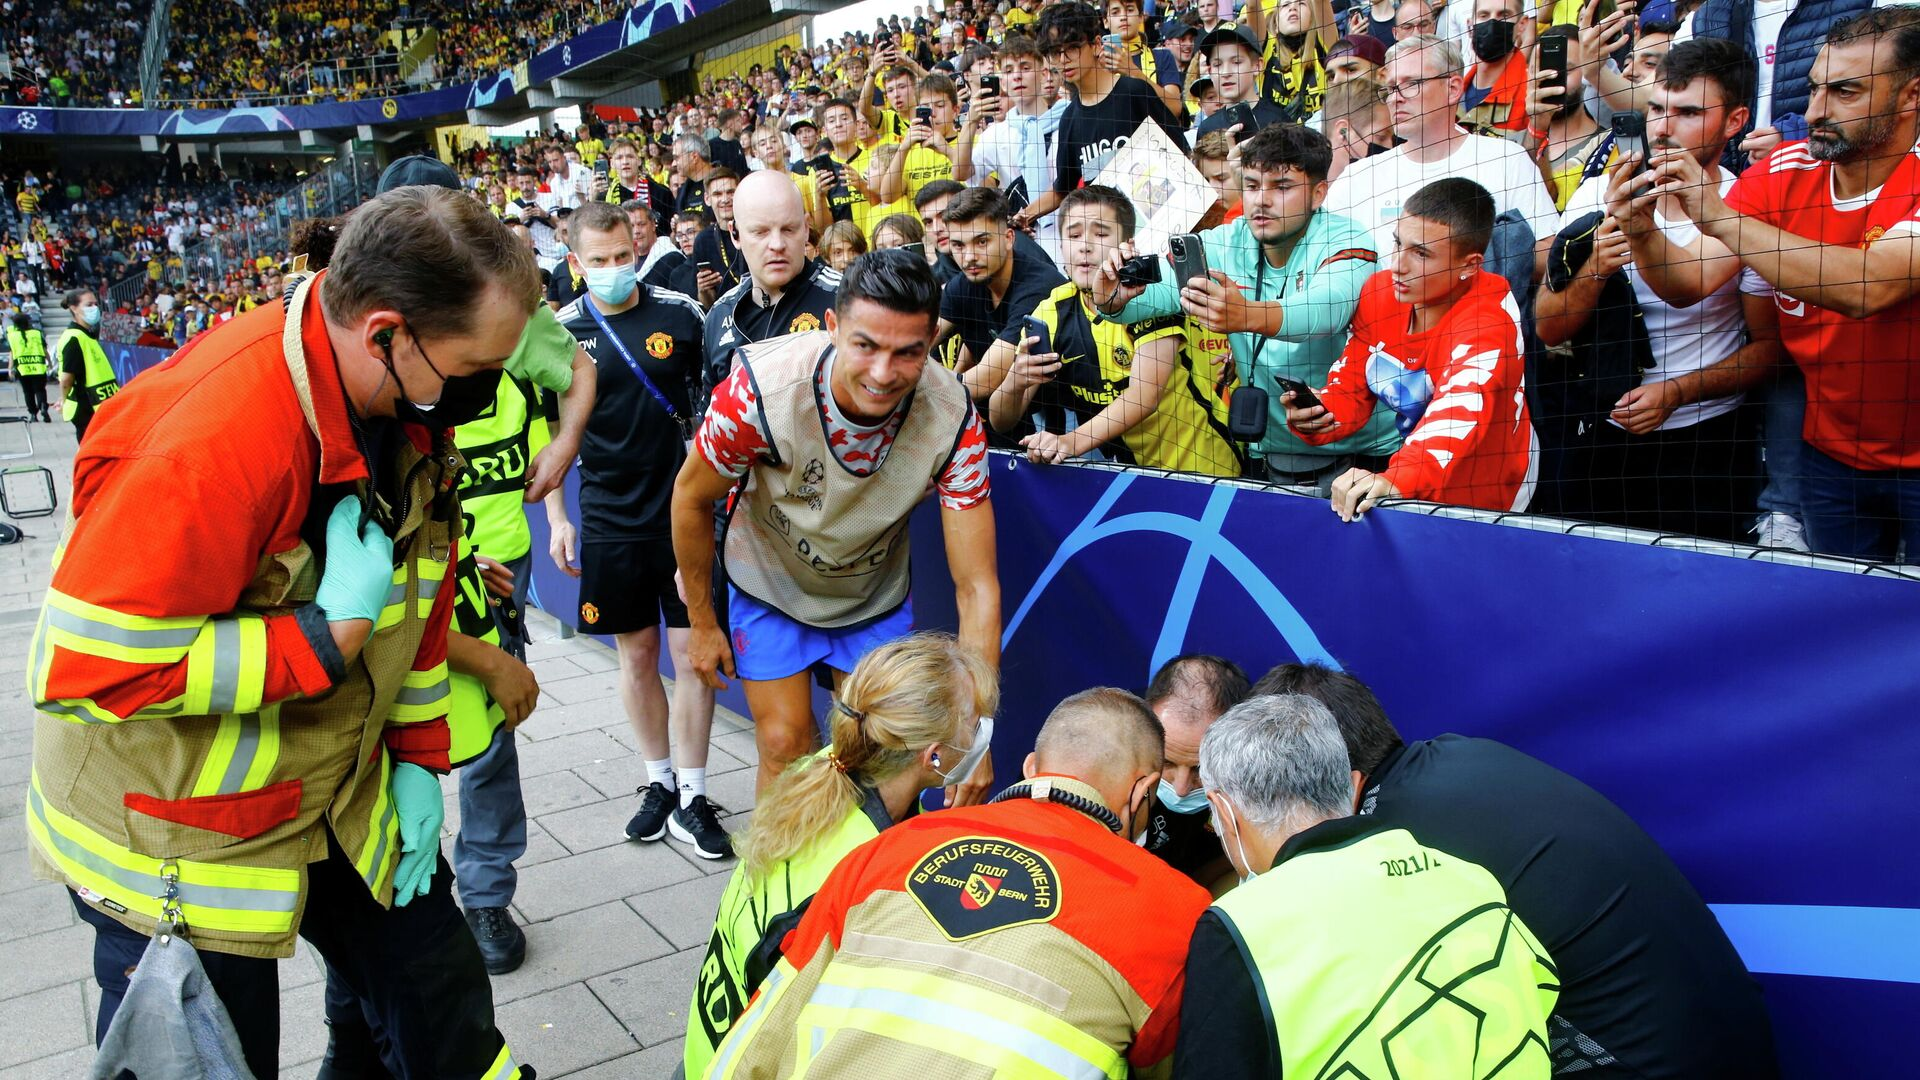 Manchester United's Cristiano Ronaldo checks on a steward after she was hit by a ball during the warm up before the match - Sputnik International, 1920, 15.09.2021